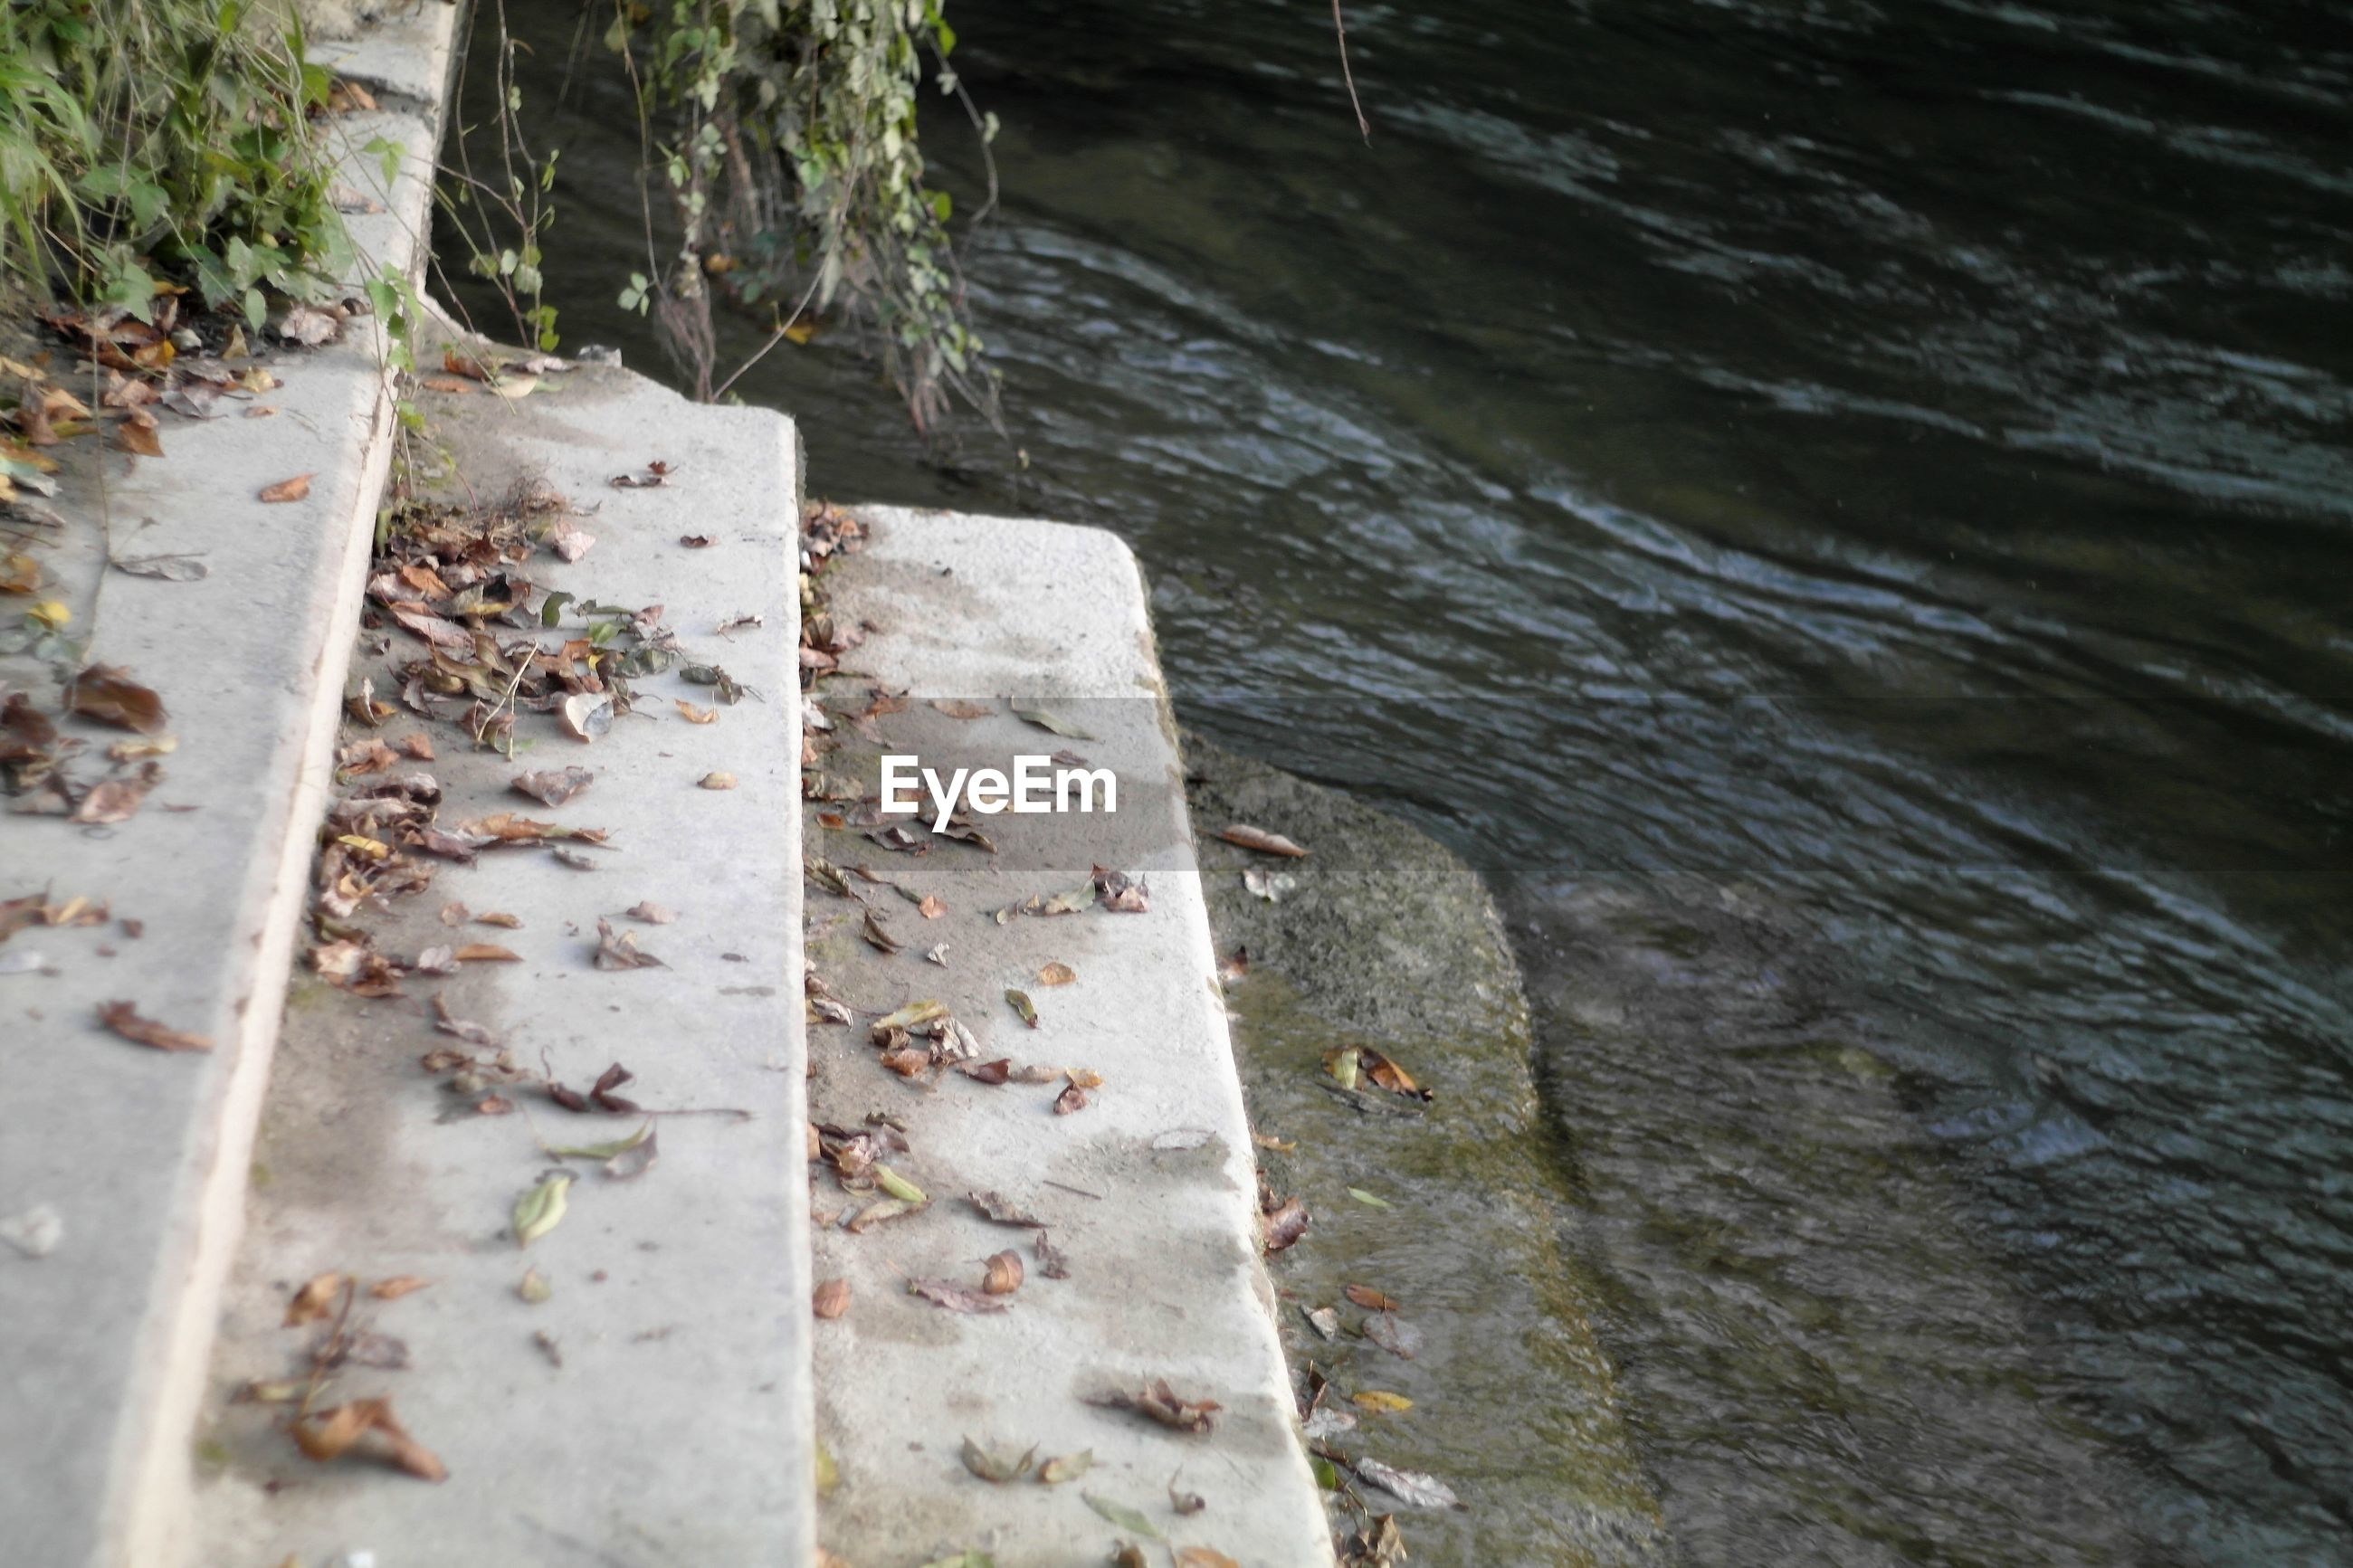 SCENIC VIEW OF RIVER BY TREE TRUNK